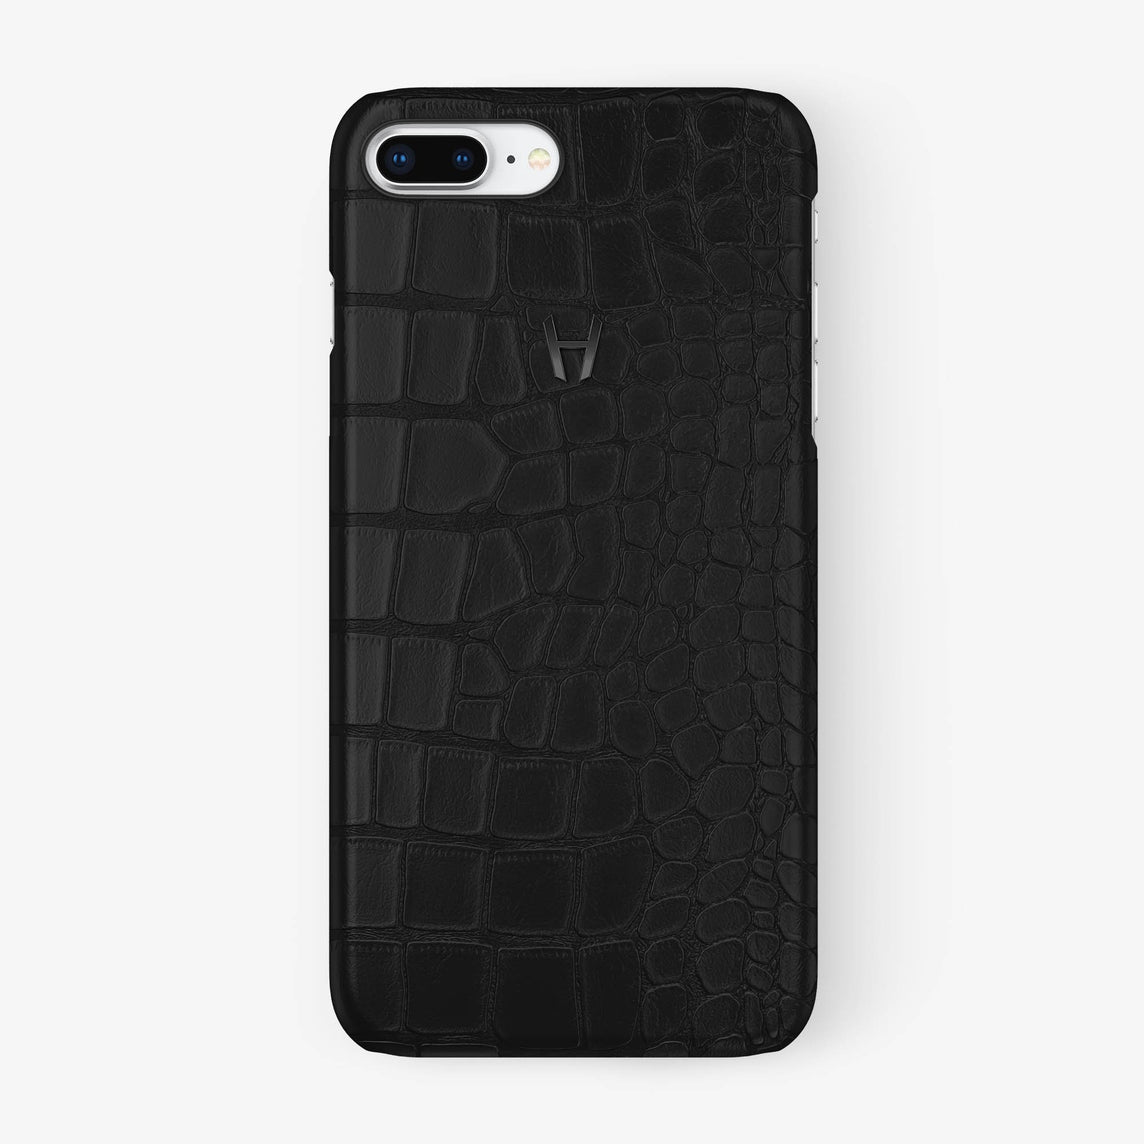 Alligator Case iPhone 7/8 Plus | Phantom Black - Black - Hadoro